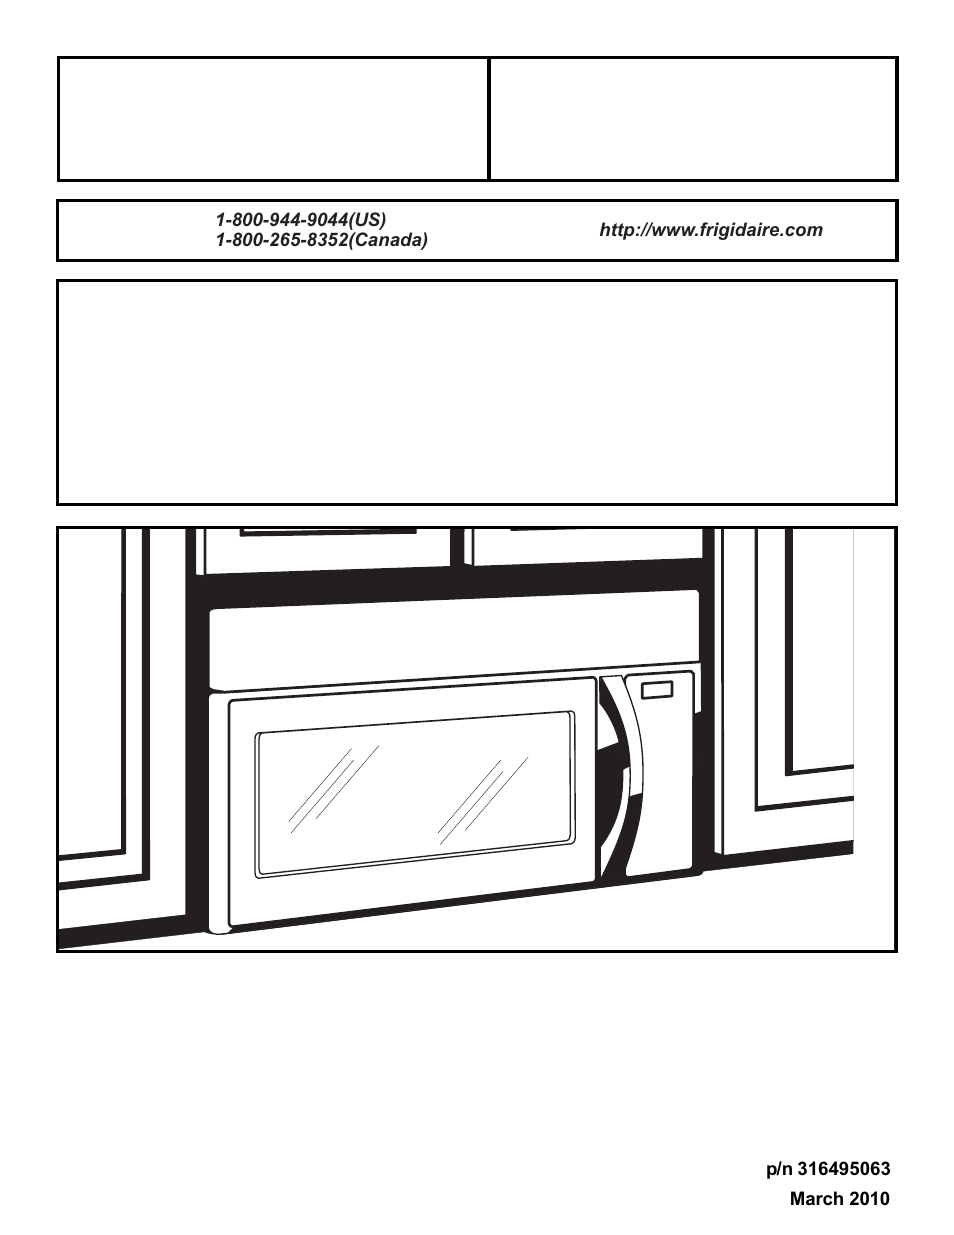 Frigidaire 316495063 User Manual 24 Pages